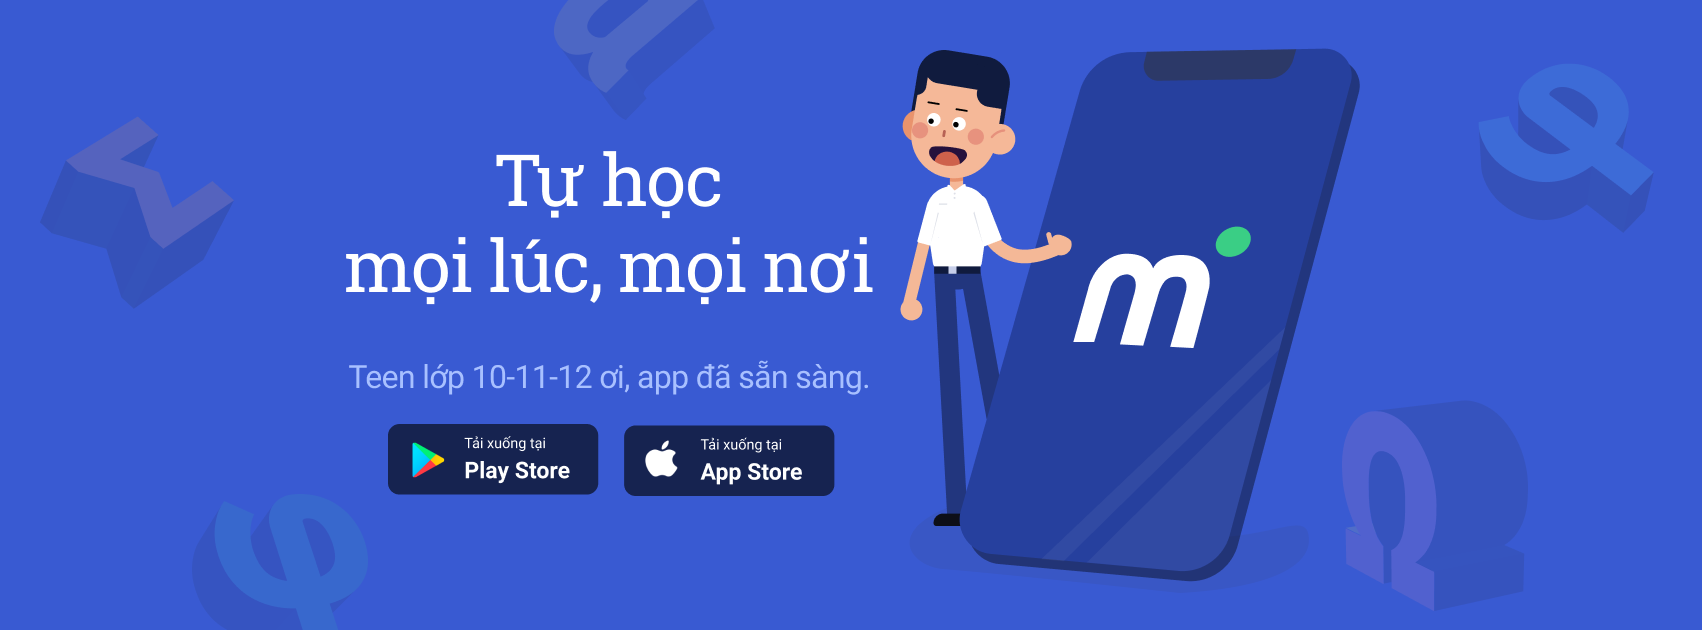 japanese edu tech startup manabie pushes its expansion into vietnam after raising us 48 million in its initial year